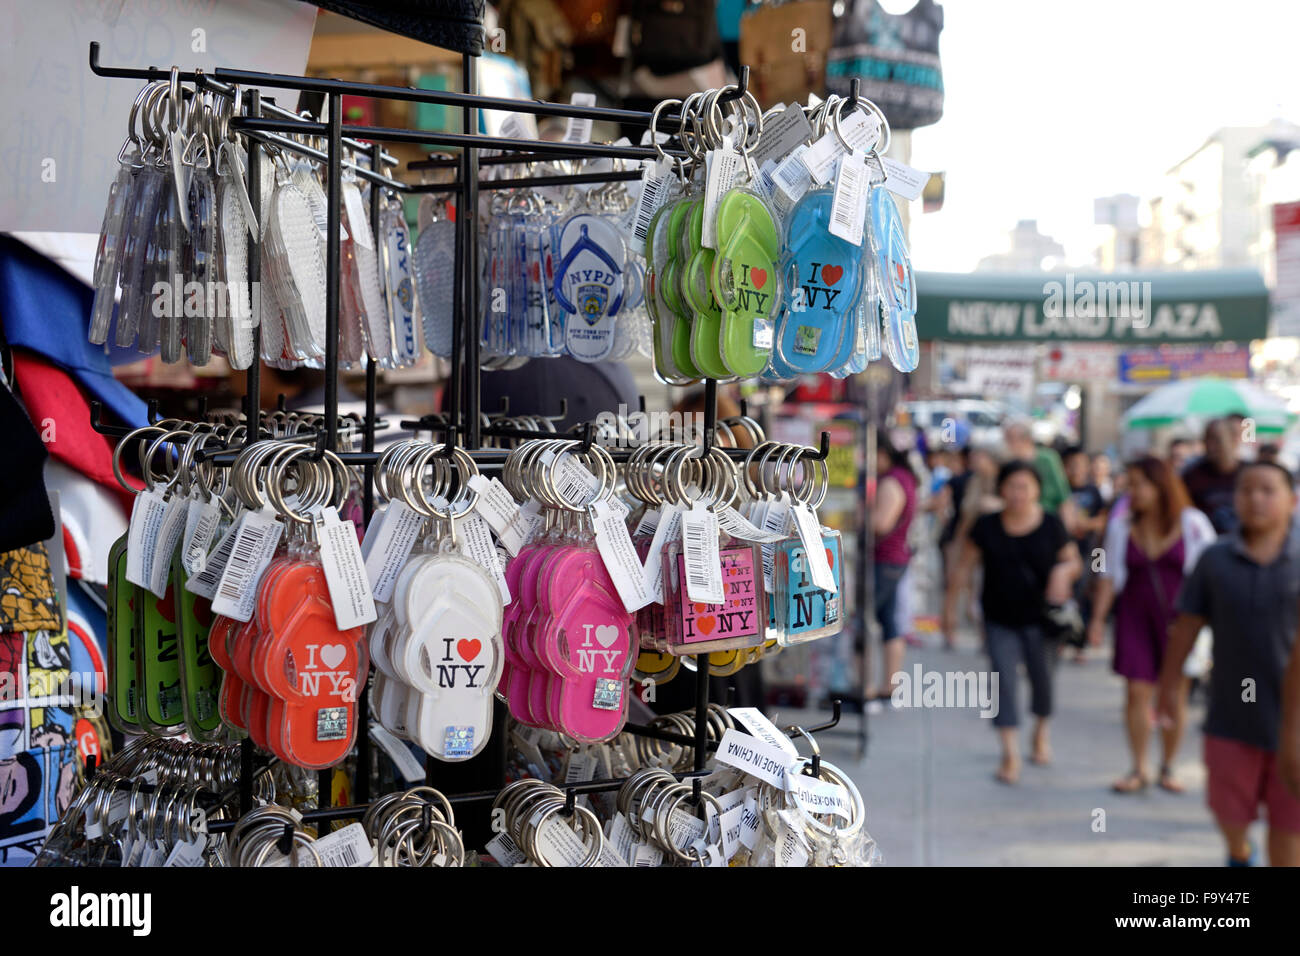 Souvenir vendor selling colorful flip flop key chain on Canal Street in New York City Chinatown, USA - Stock Image